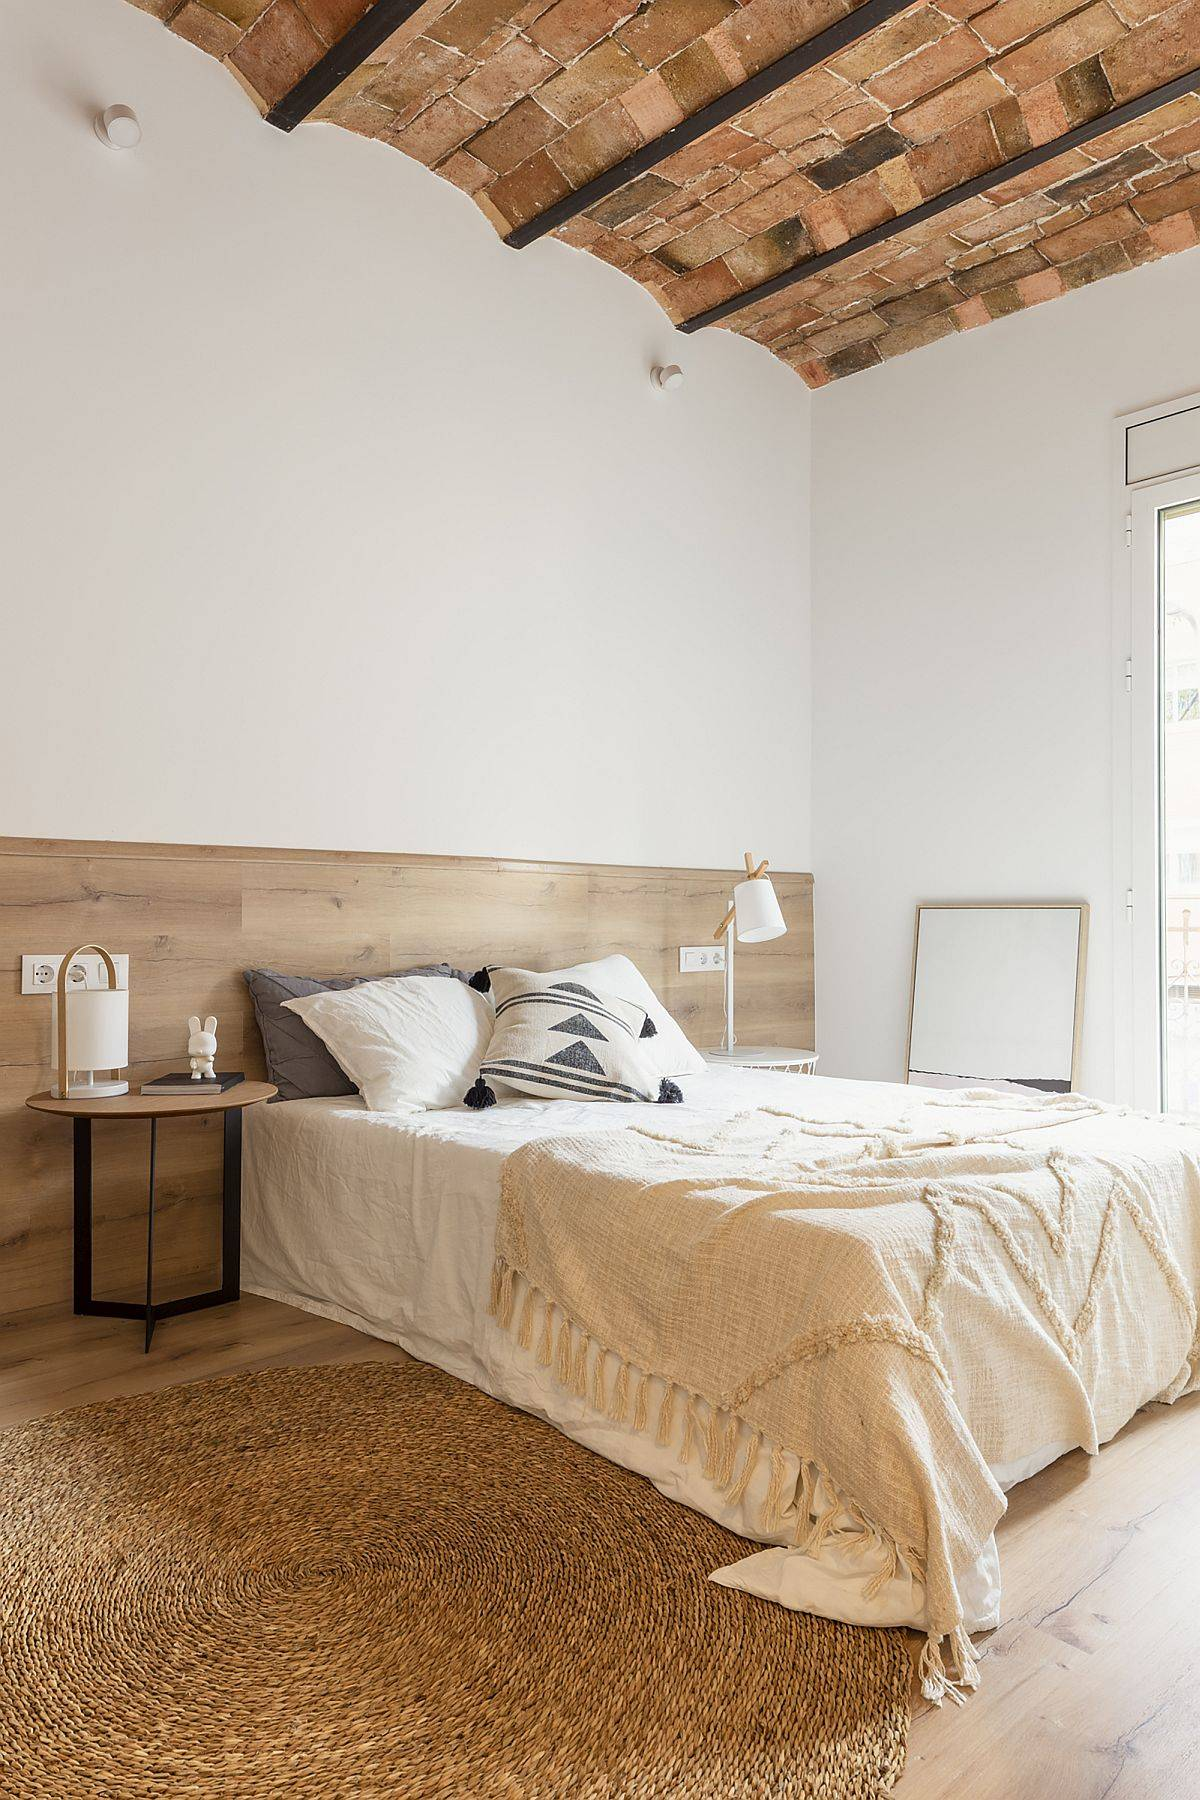 Bedroom of the Barcelona home with a white. wood and tiled look